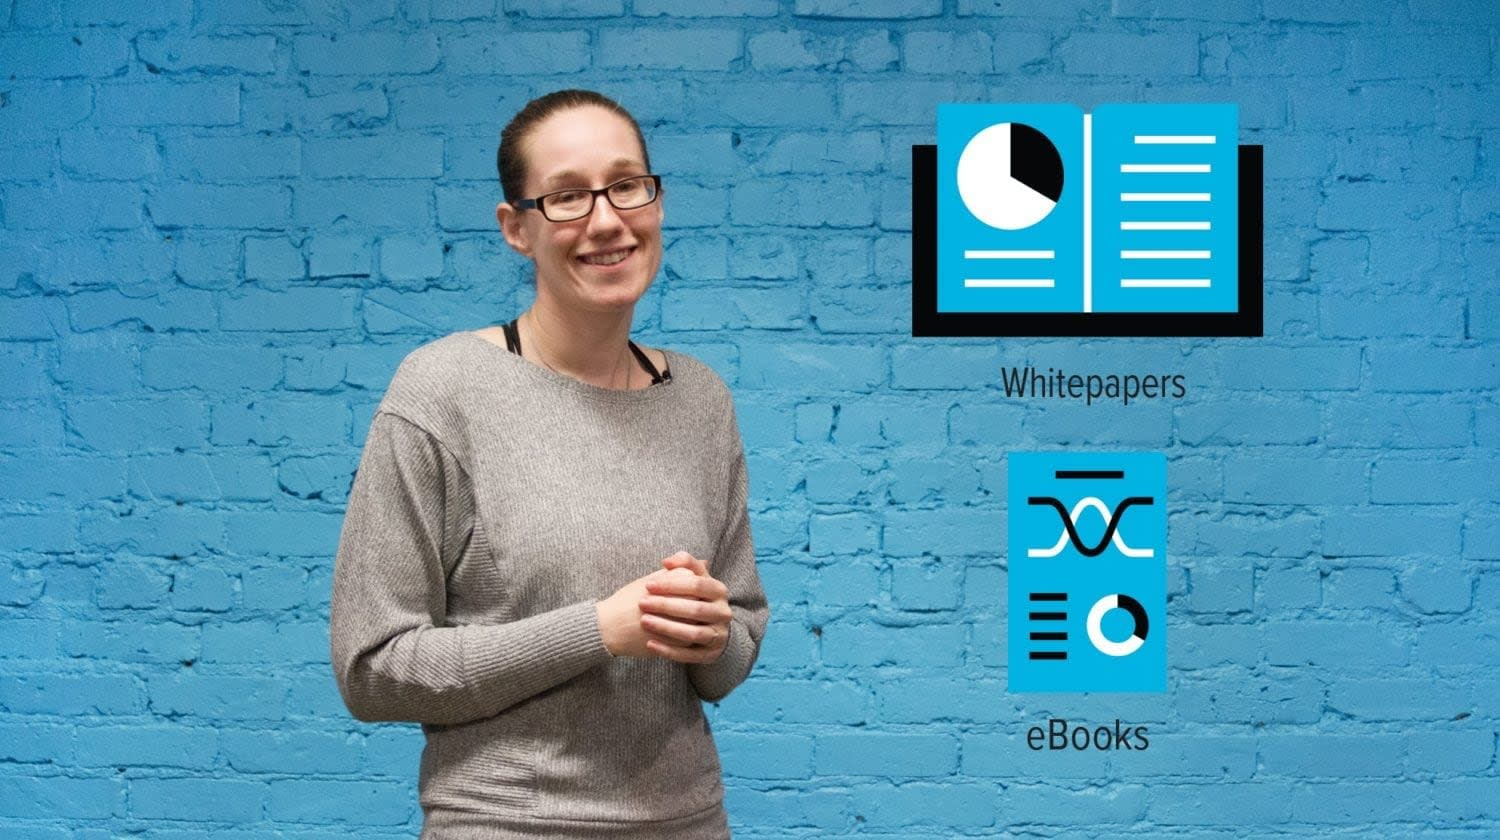 eBooks vs Whitepapers Visual Minute